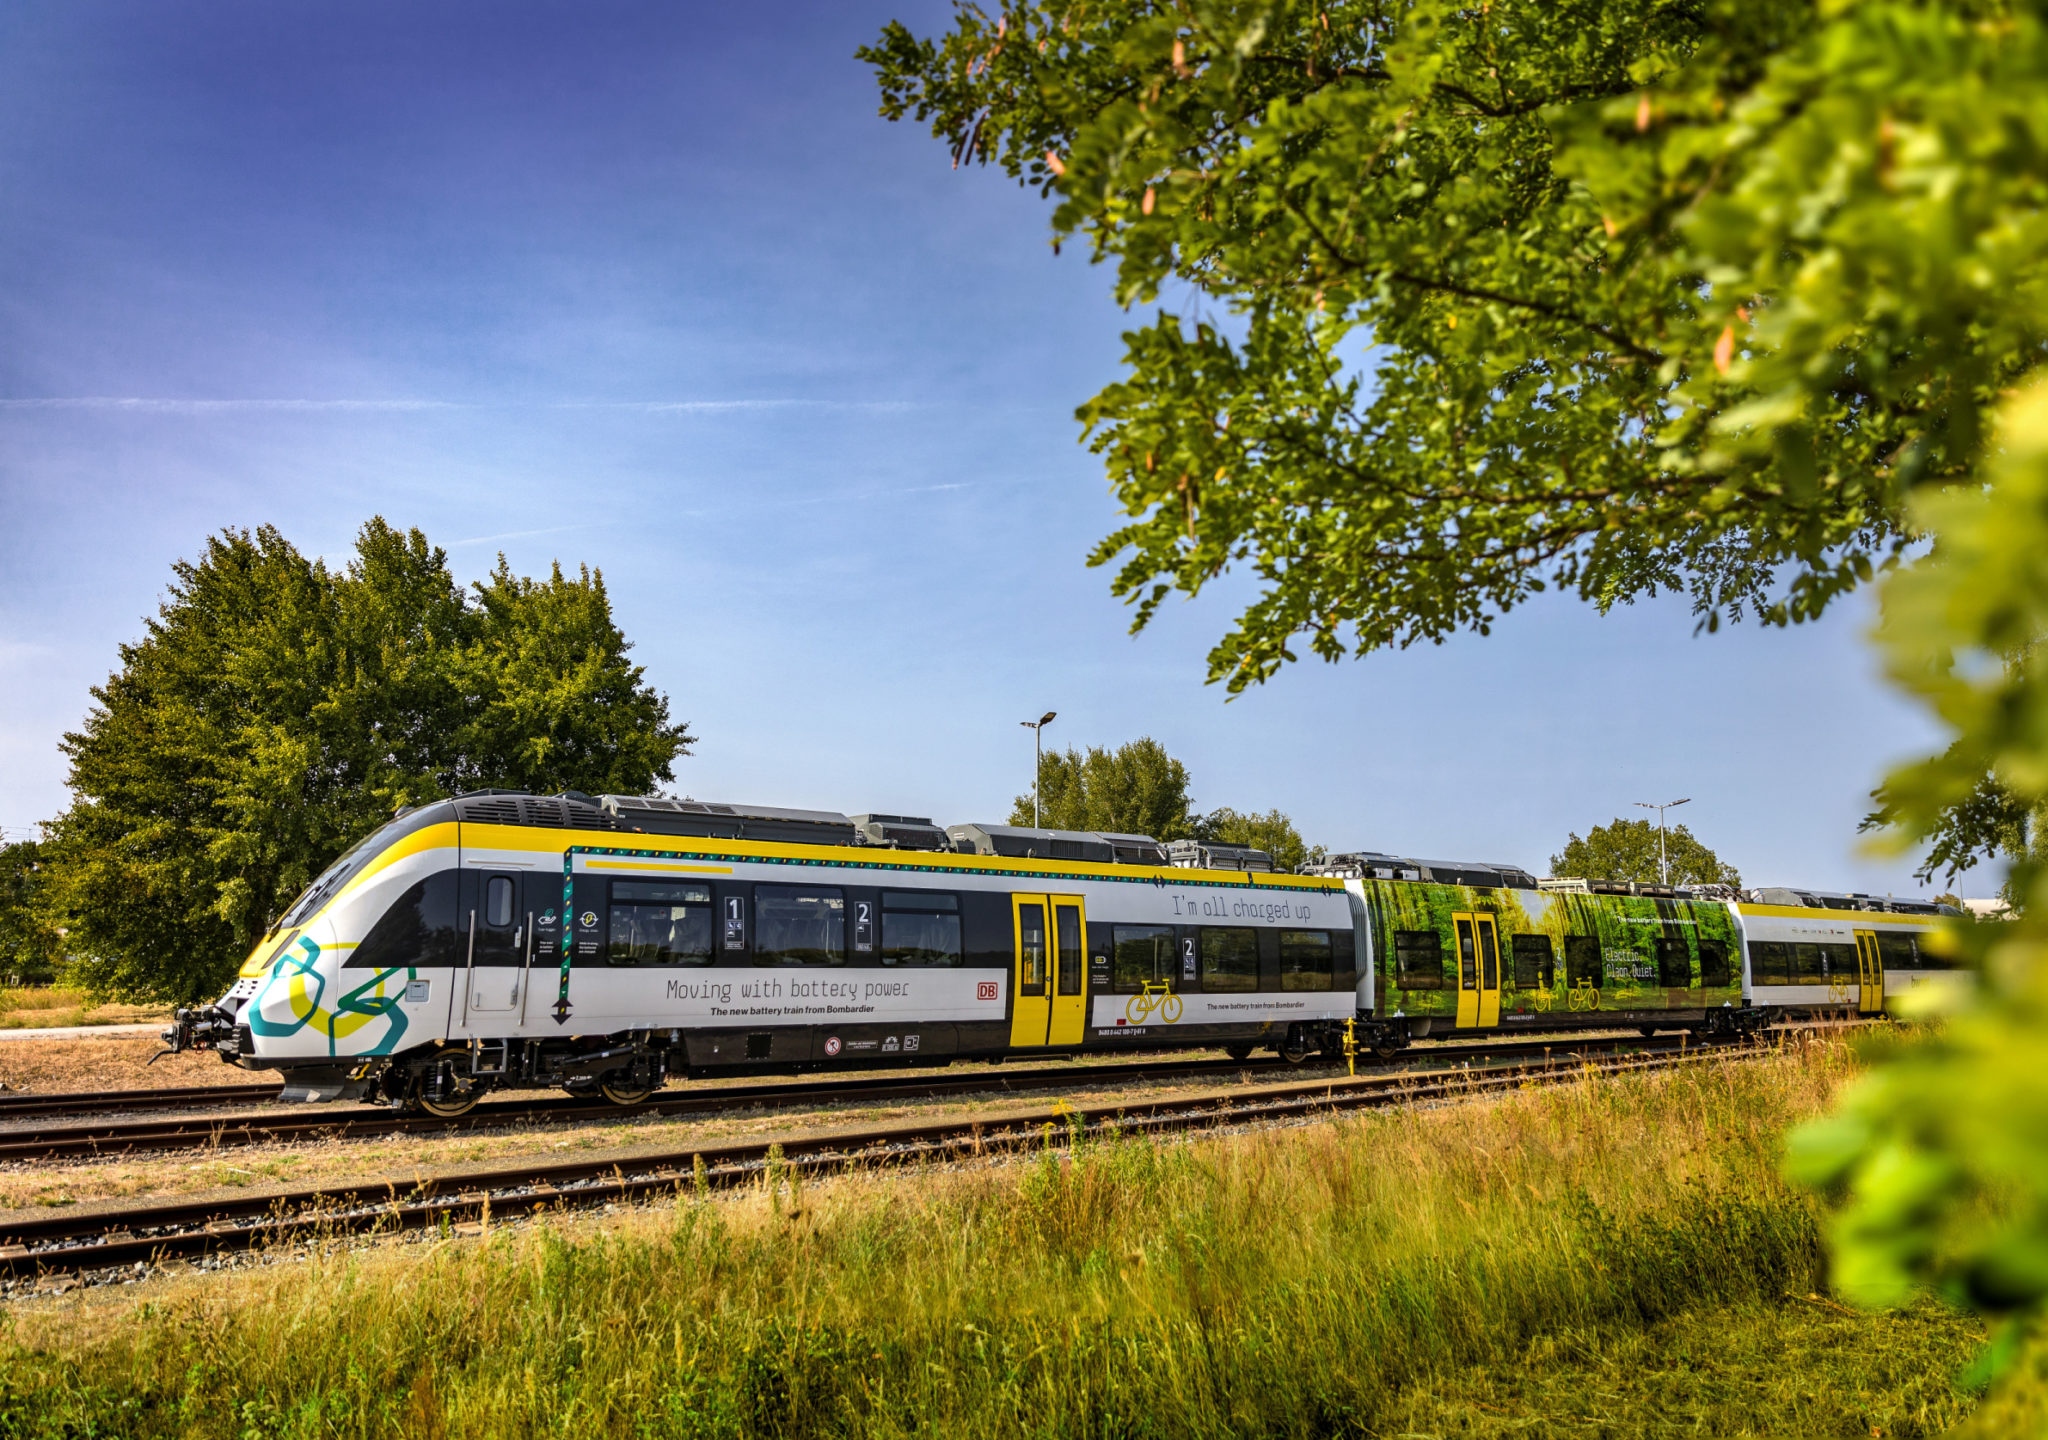 Bombardier's battery-powered train – the TALENT 3 EMU